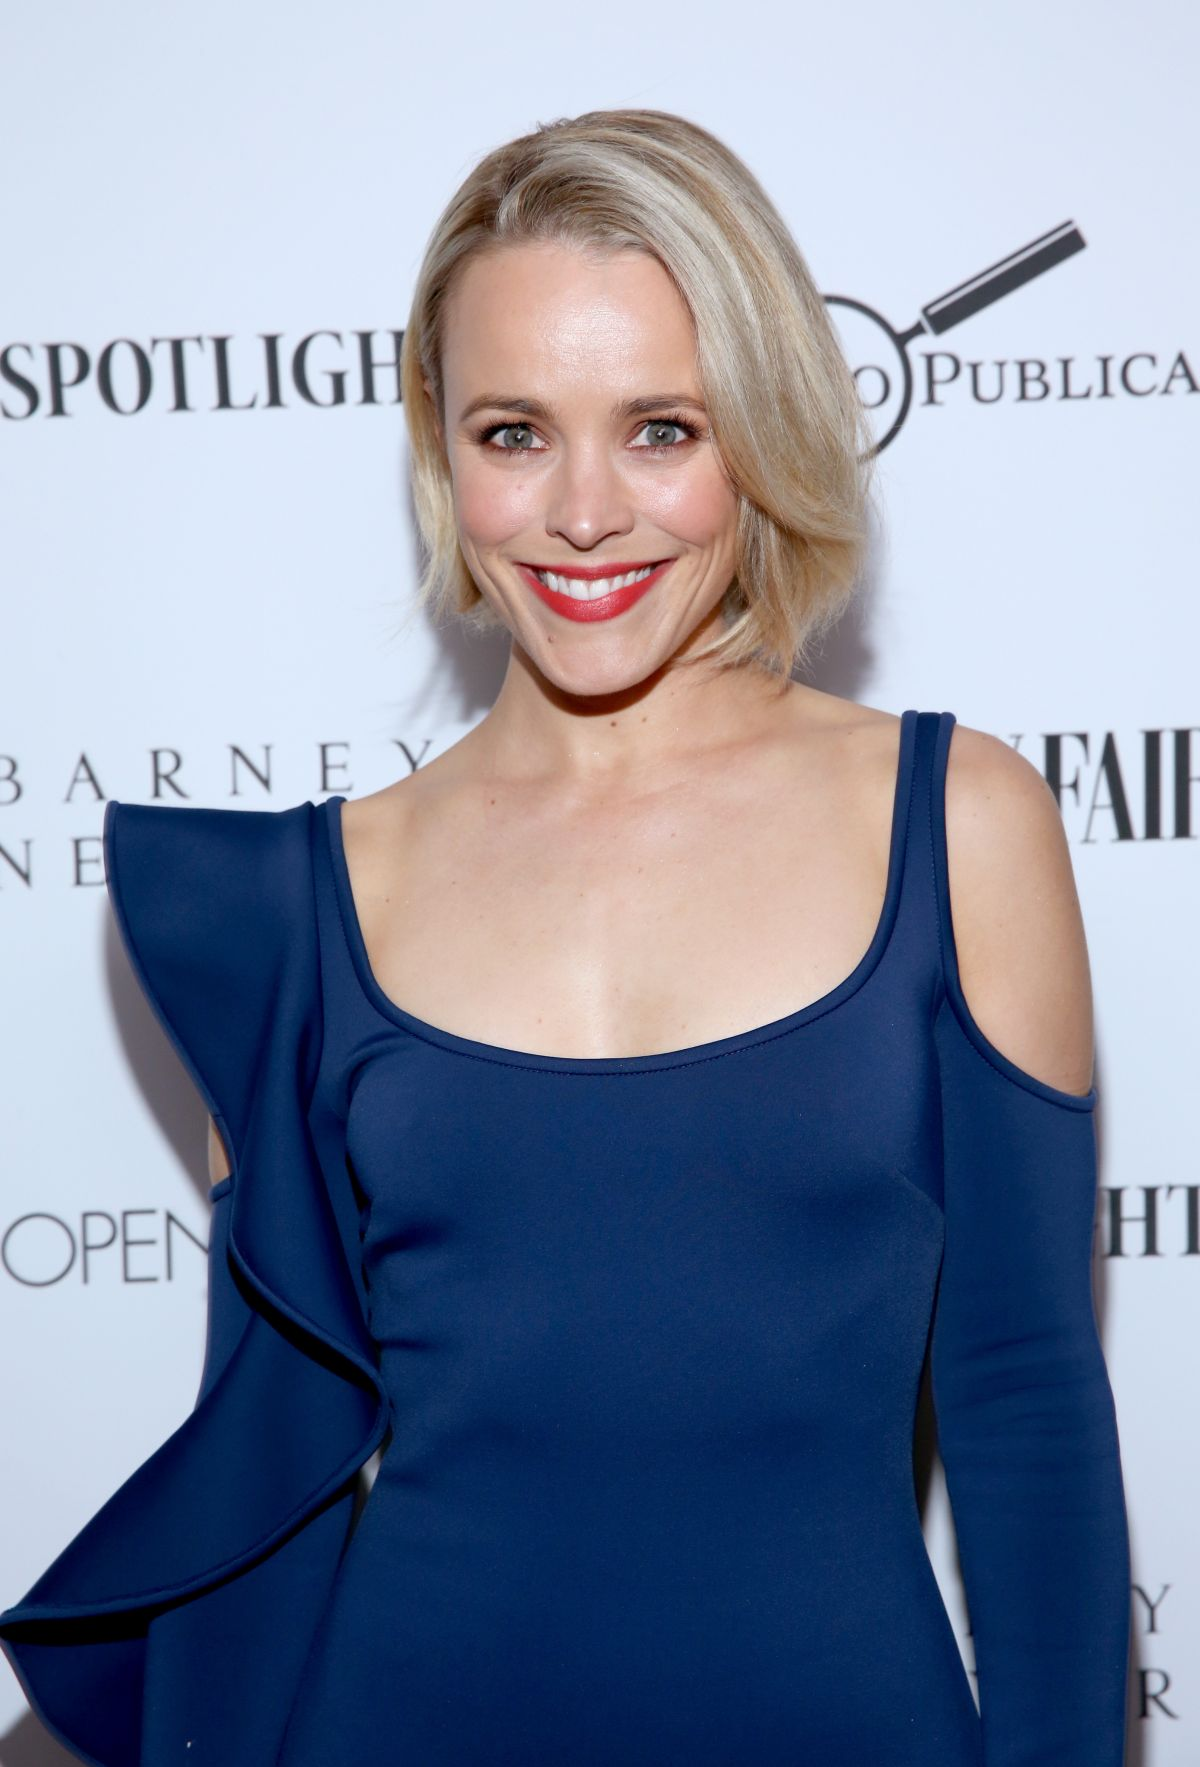 Young Rachel McAdams nudes (13 foto and video), Ass, Leaked, Twitter, in bikini 2017